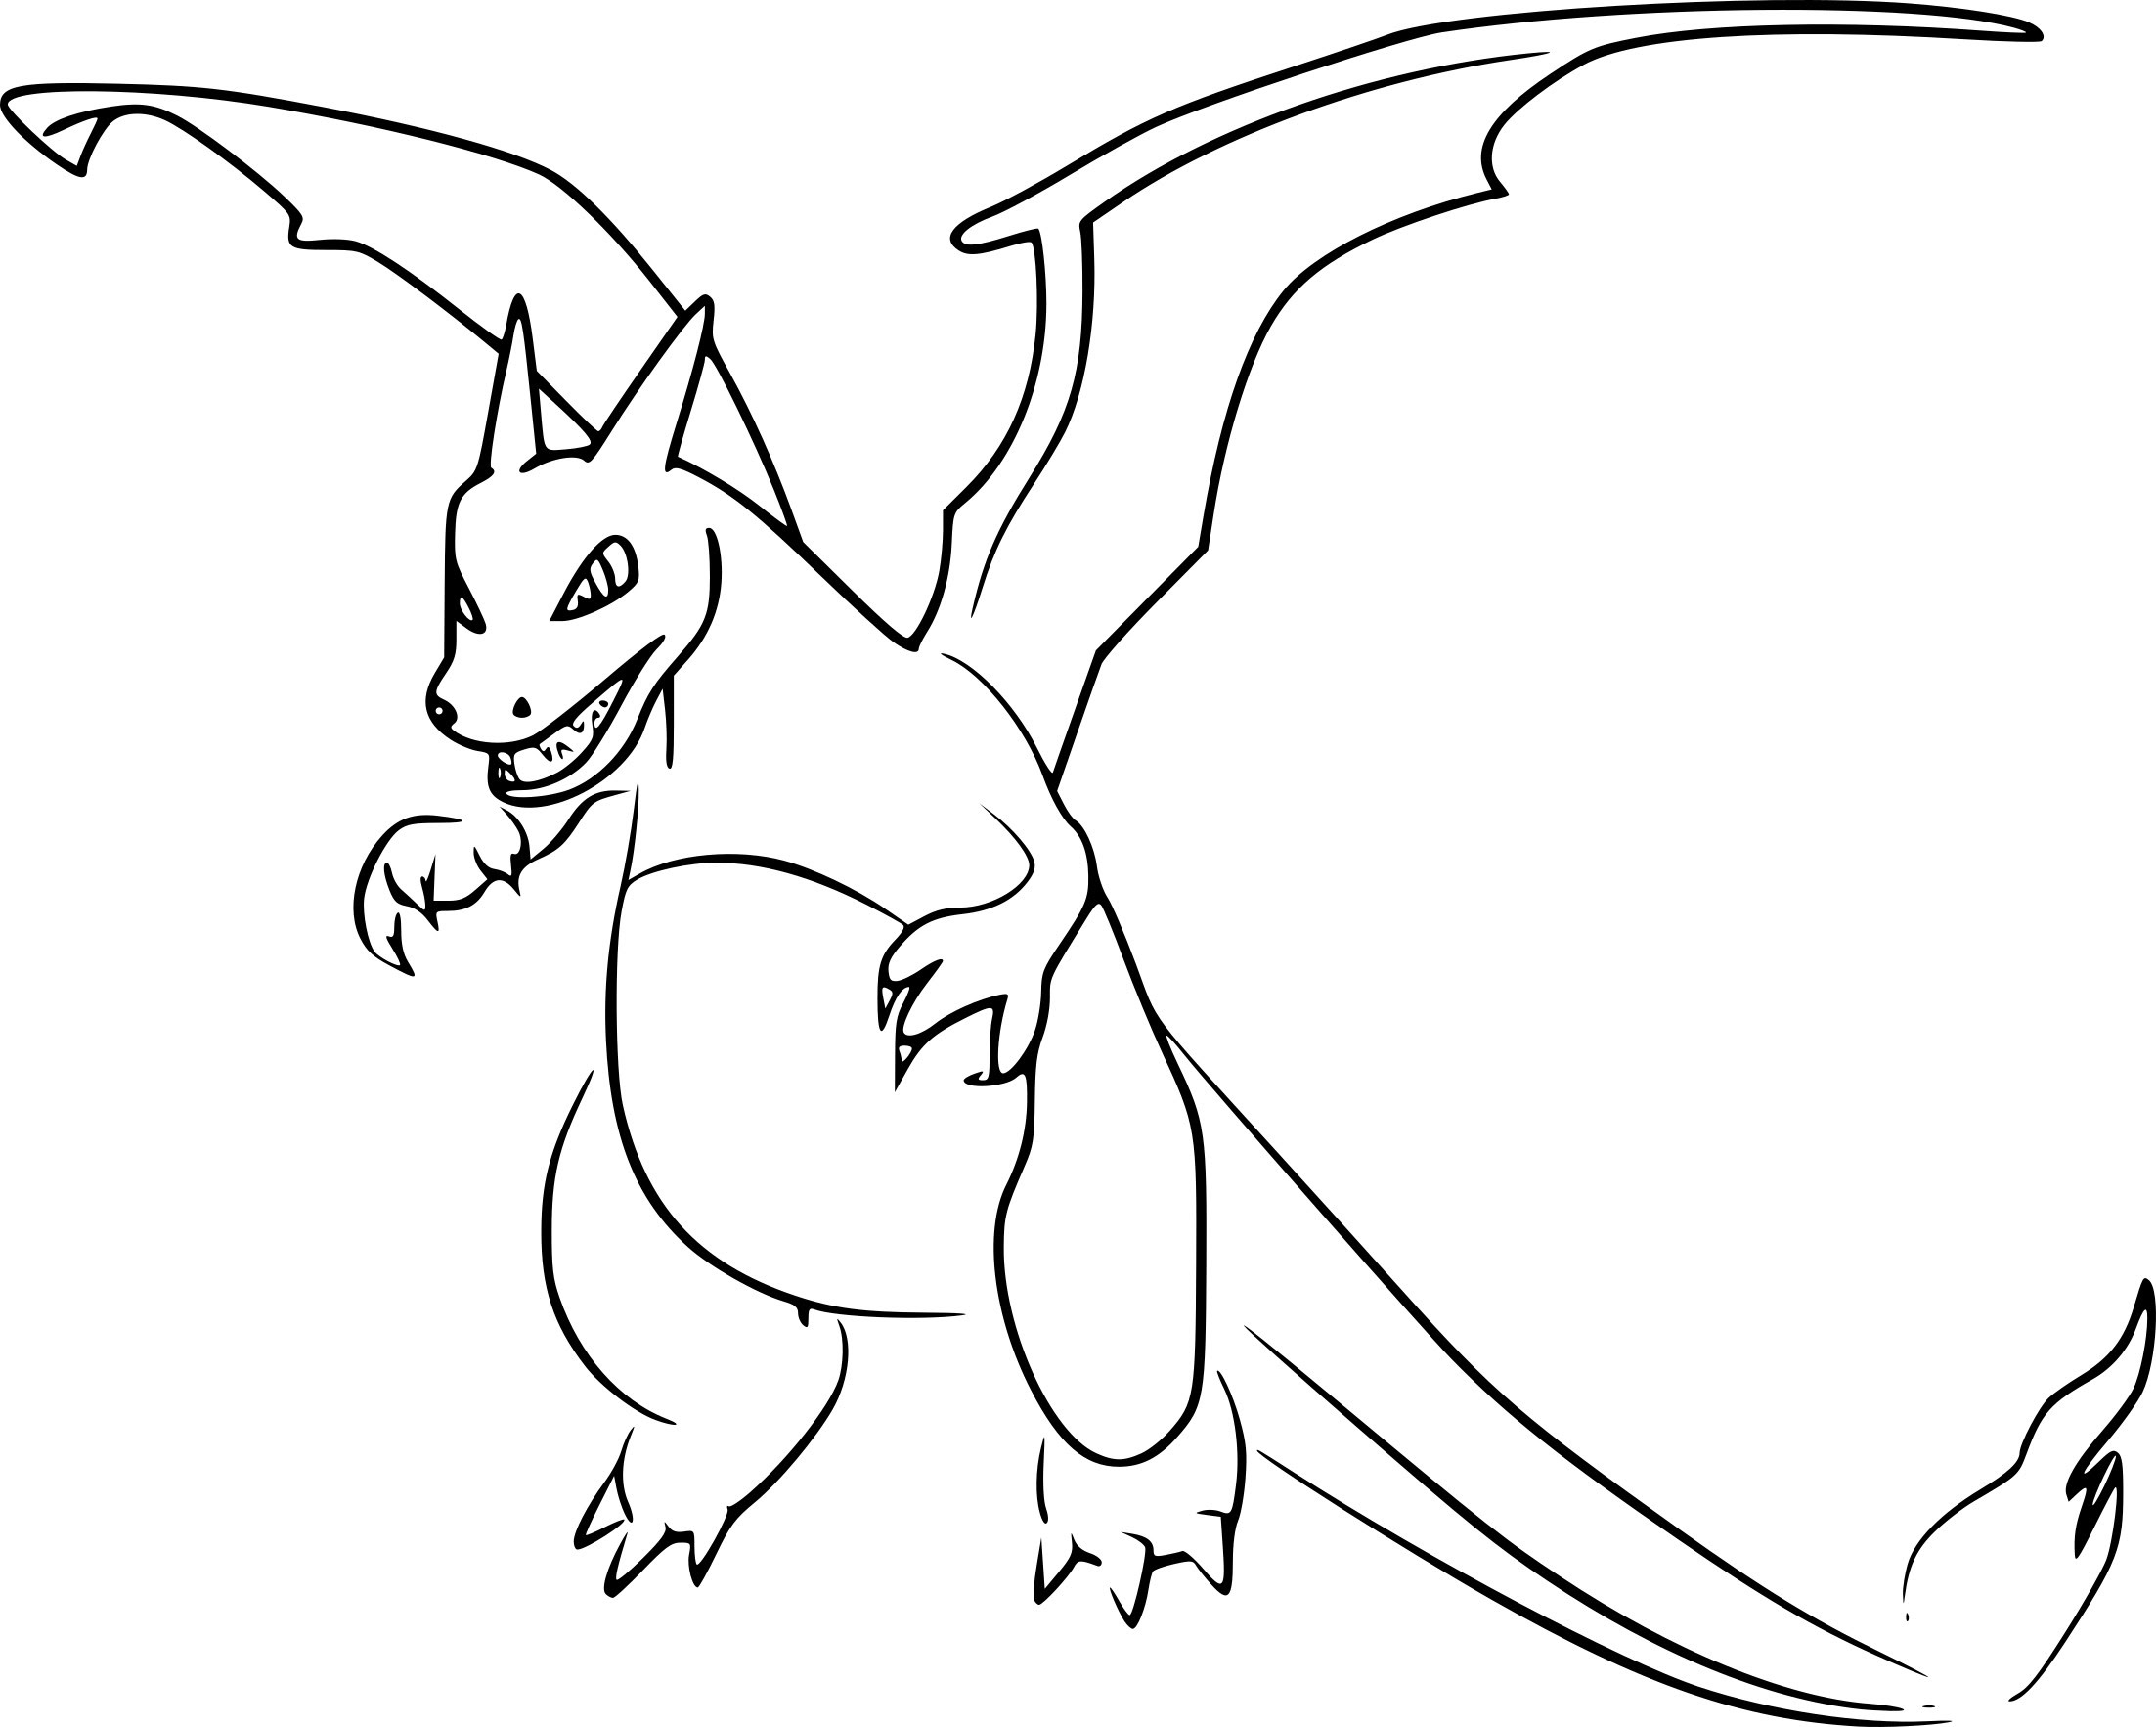 30 Free Download Pokemon X Coloriage Worksheets For Children Pdf Doc